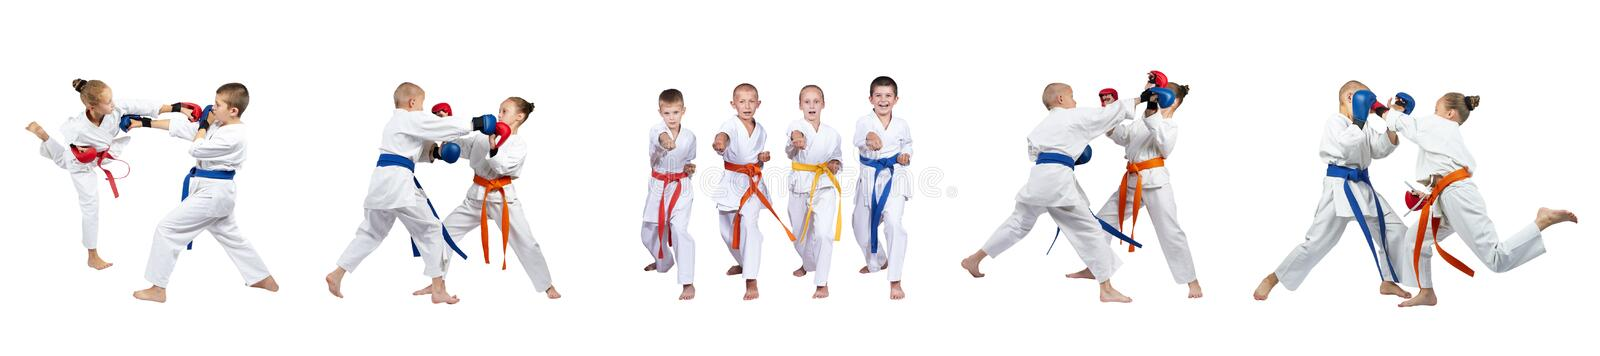 Blows hands are training the children in karategi collage royalty free stock image